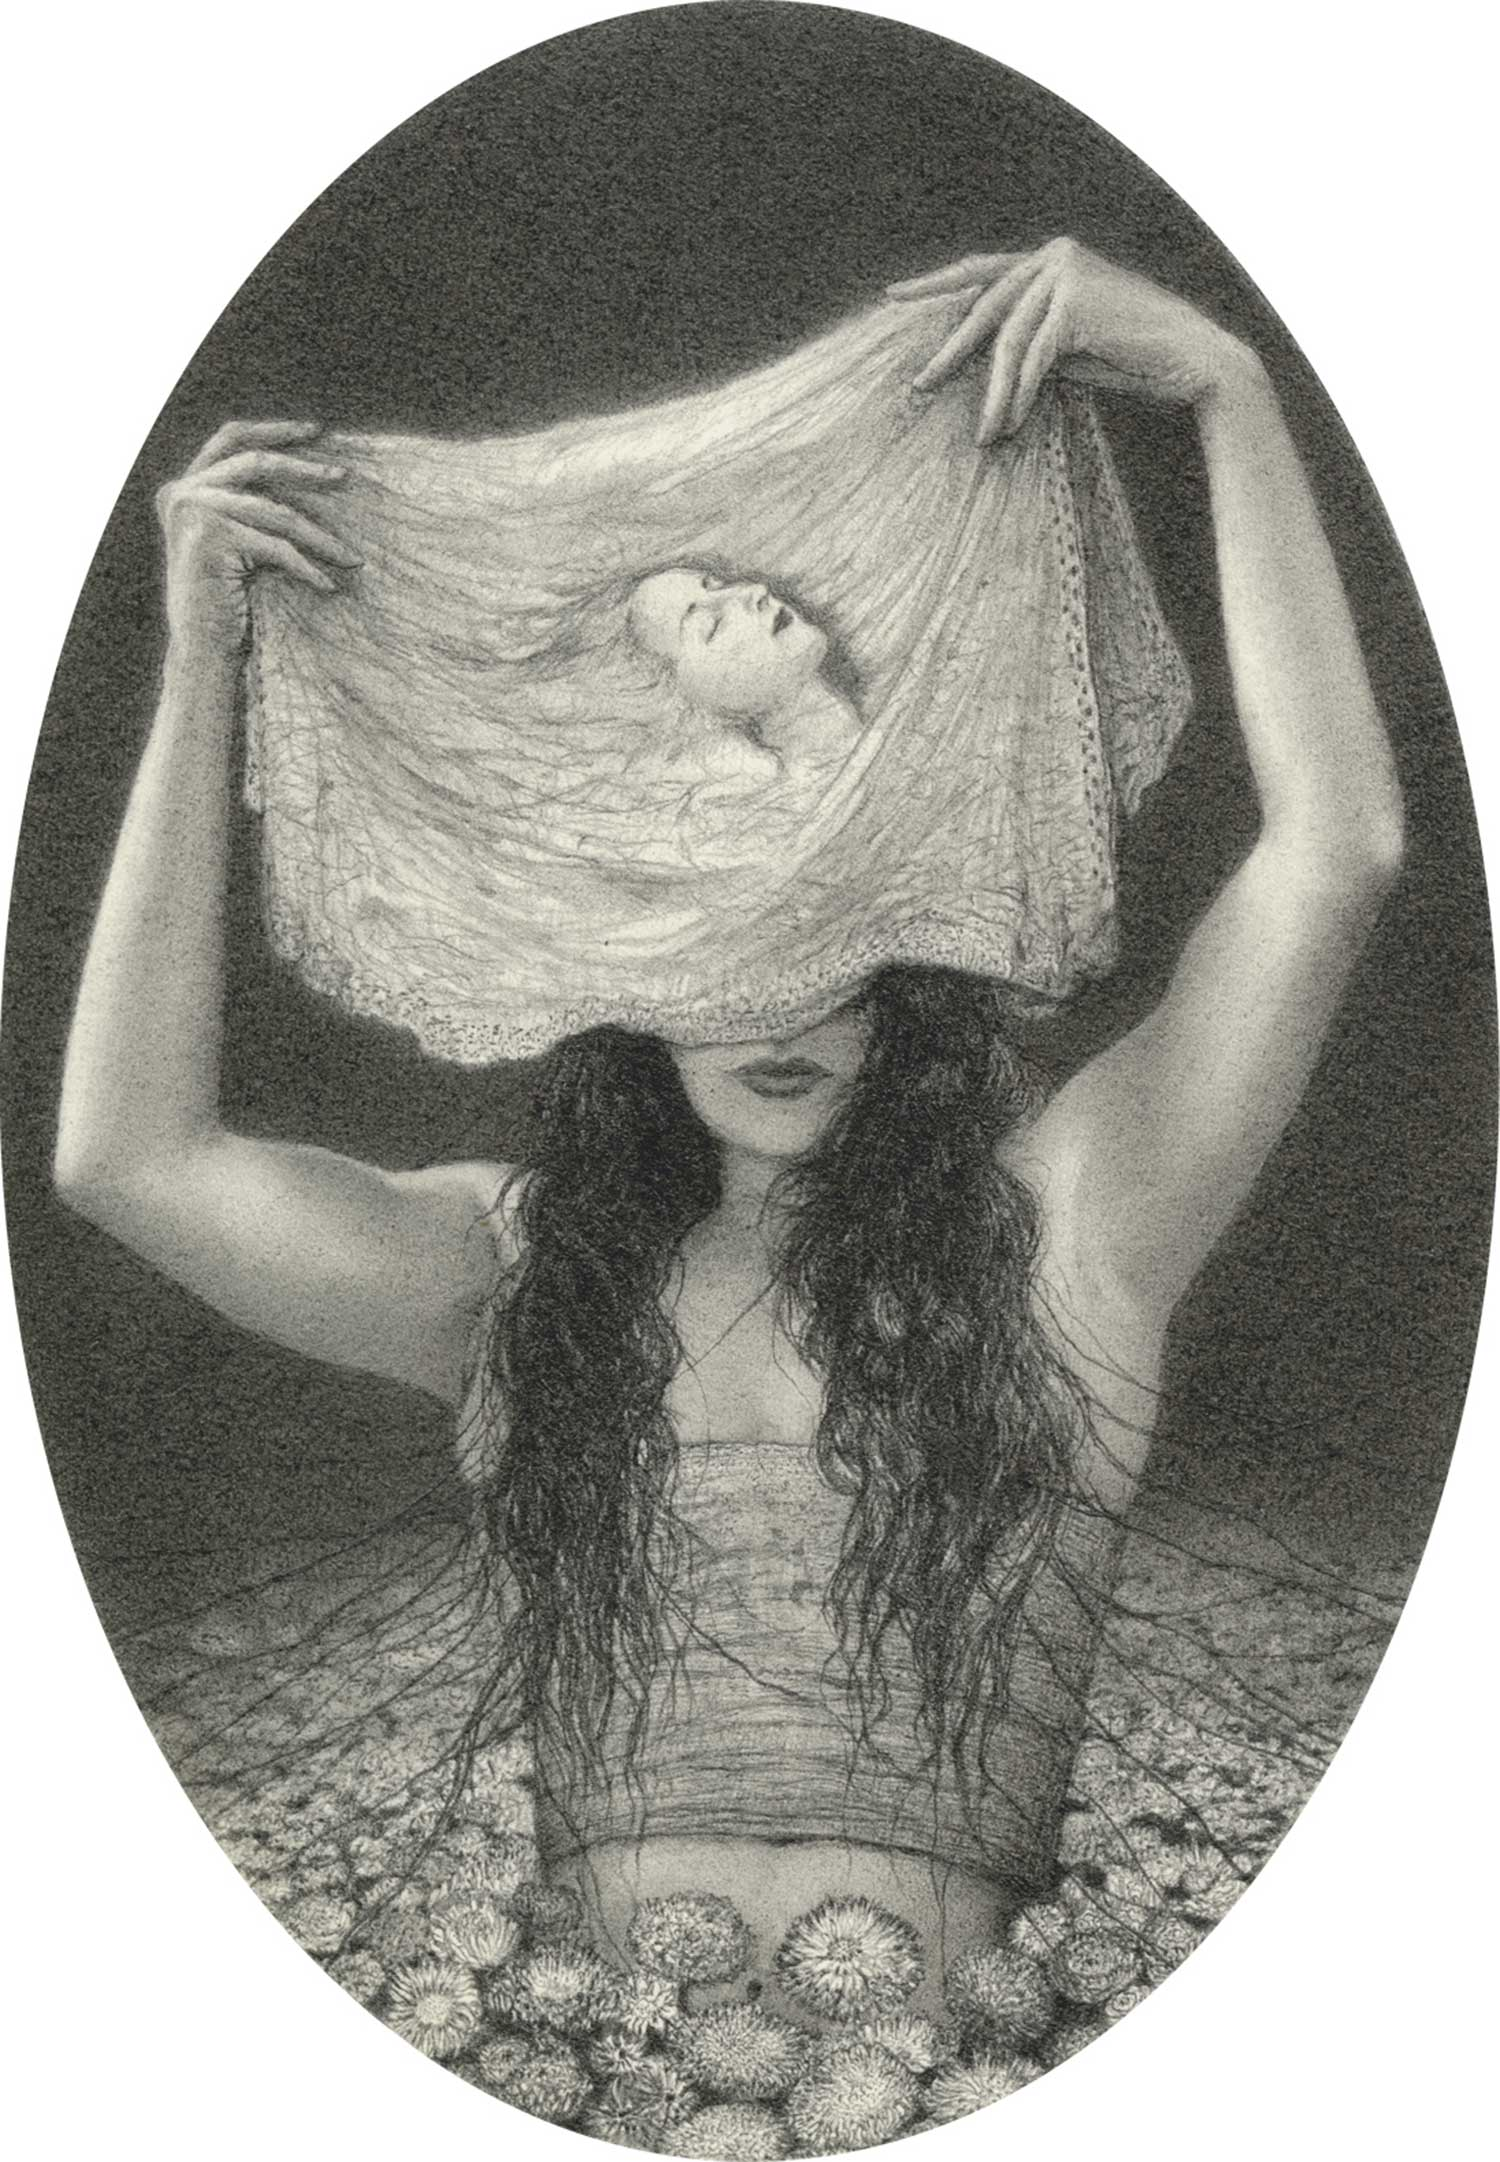 woman with cloth portrait over head by by alejandro garcia restrepo